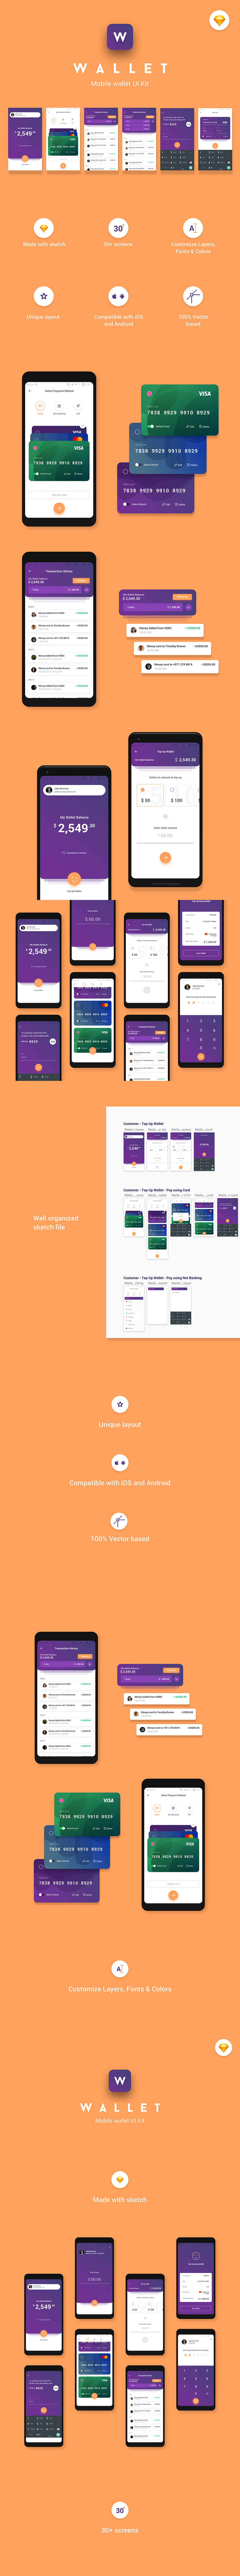 设计精良的钱包类APP UI KIT套装模板 [Sketch] Wallet - Mobile UI Kit